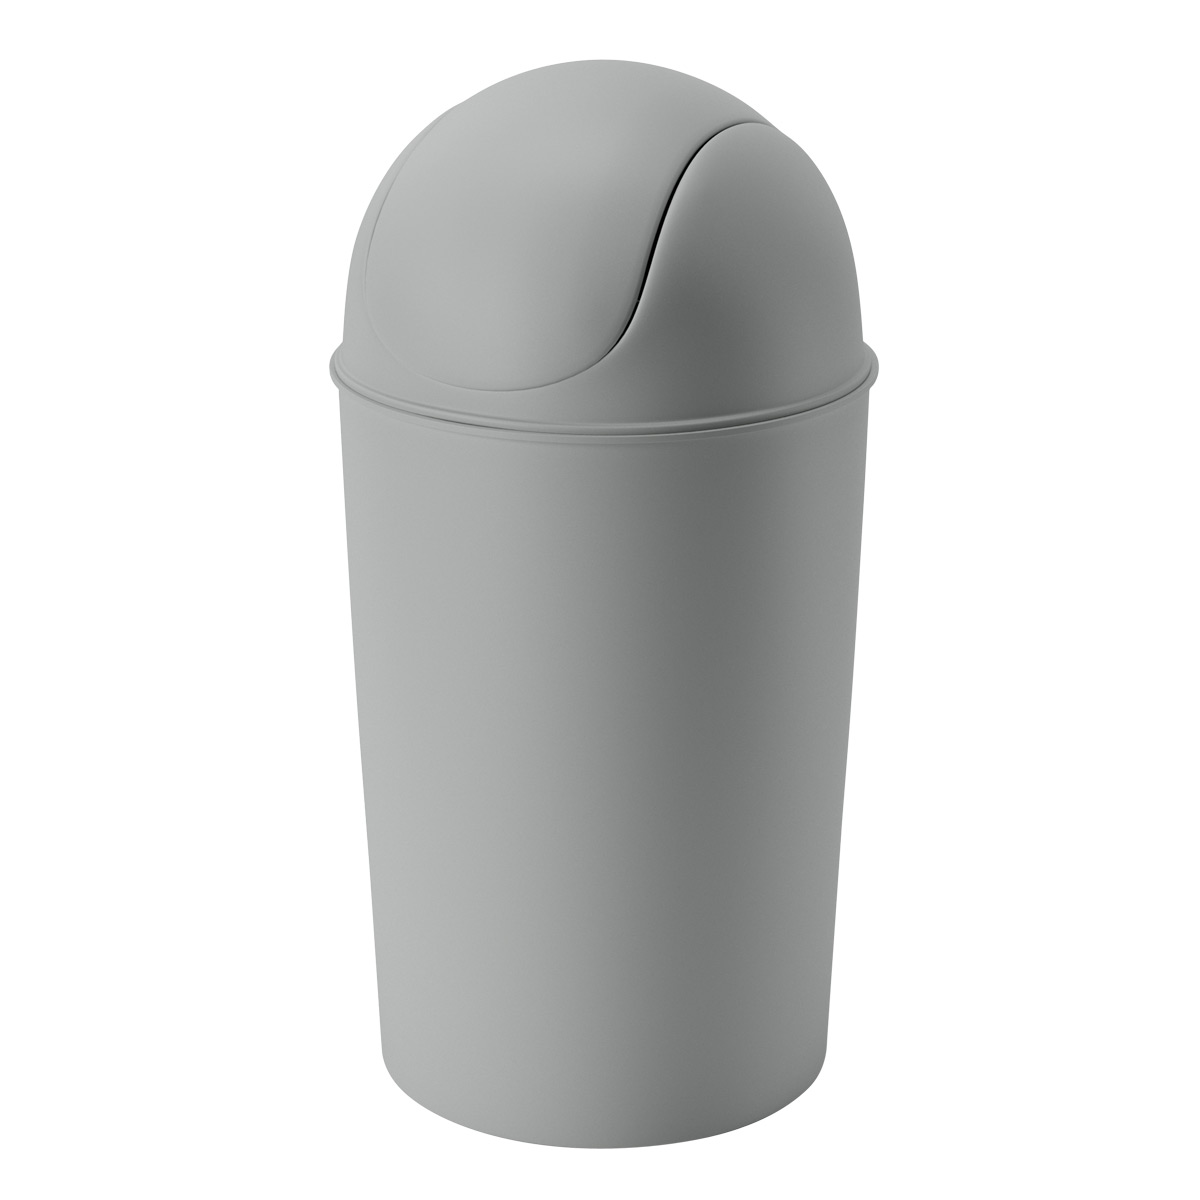 Umbra 10.25 gal. Gray Grand Trash Can